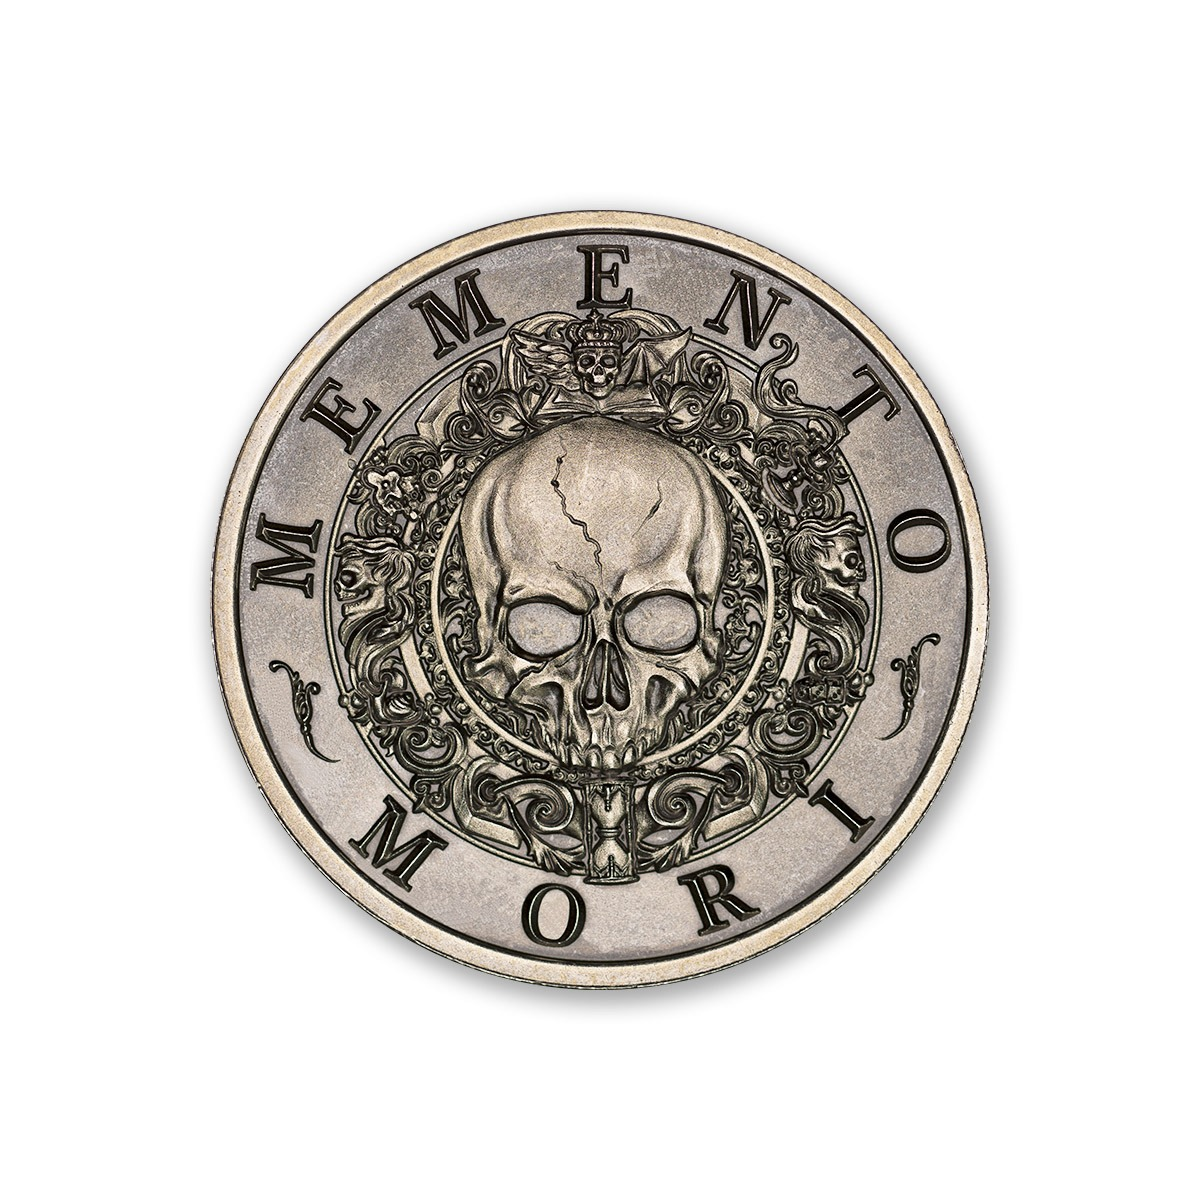 MEMENTO MORI – 2 TROY OUNCE – 39MM (ANTIQUED)